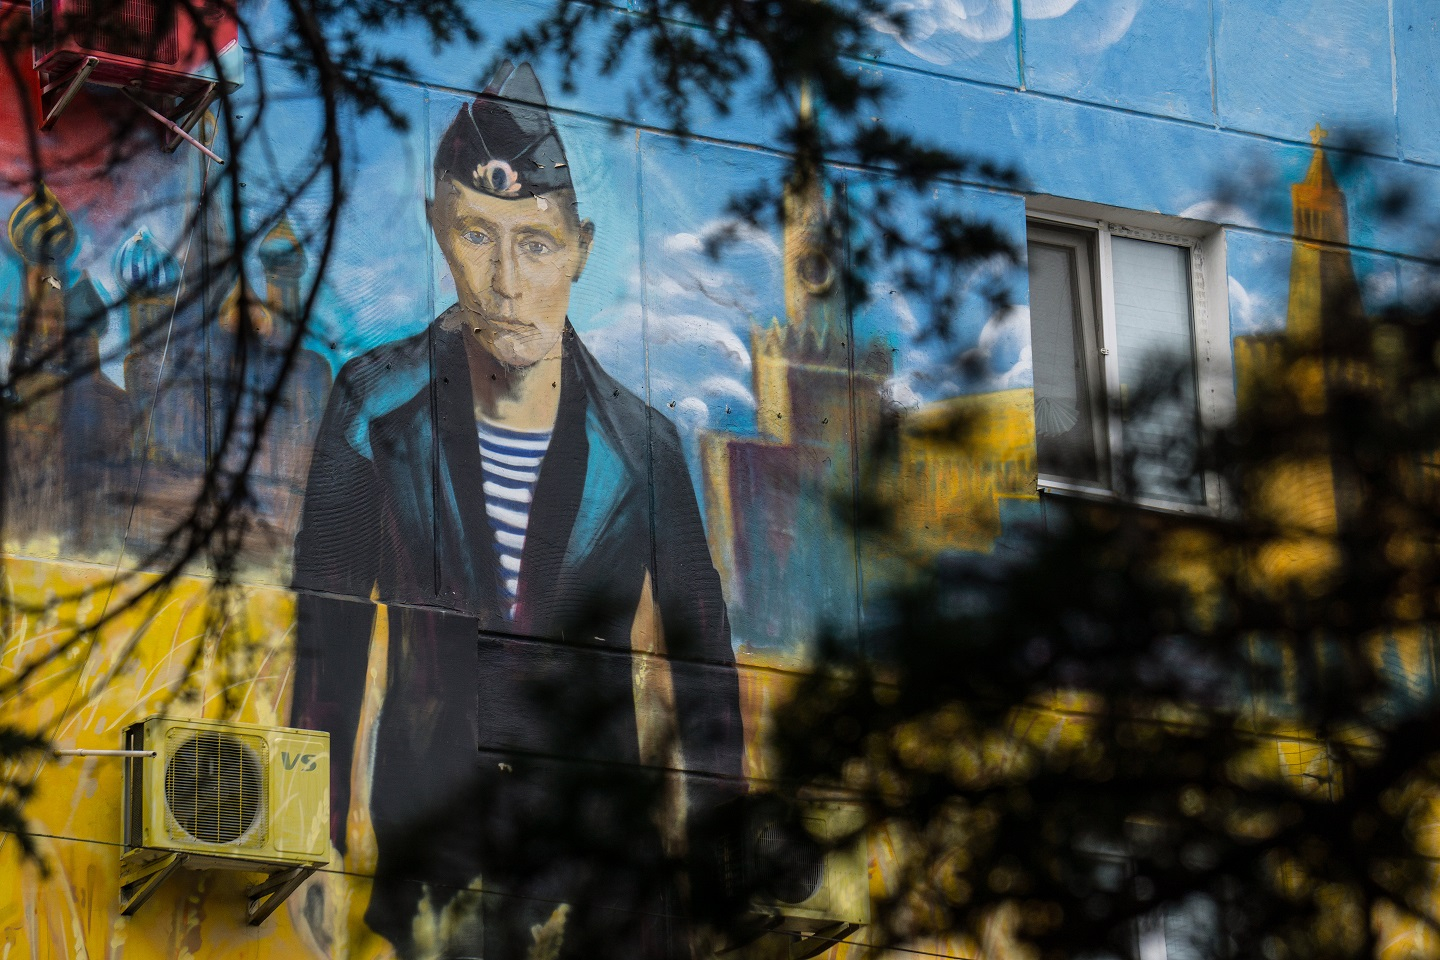 An image of Vladimir Putin on one of houses in Sevastopol on August 12, 2015 in Sevastopol, Crimea. Russian President Vladimir Putin signed a bill in March 2014 to annexe the Crimean peninsula but Ukraine and most of the international community do not recognise its annexation.